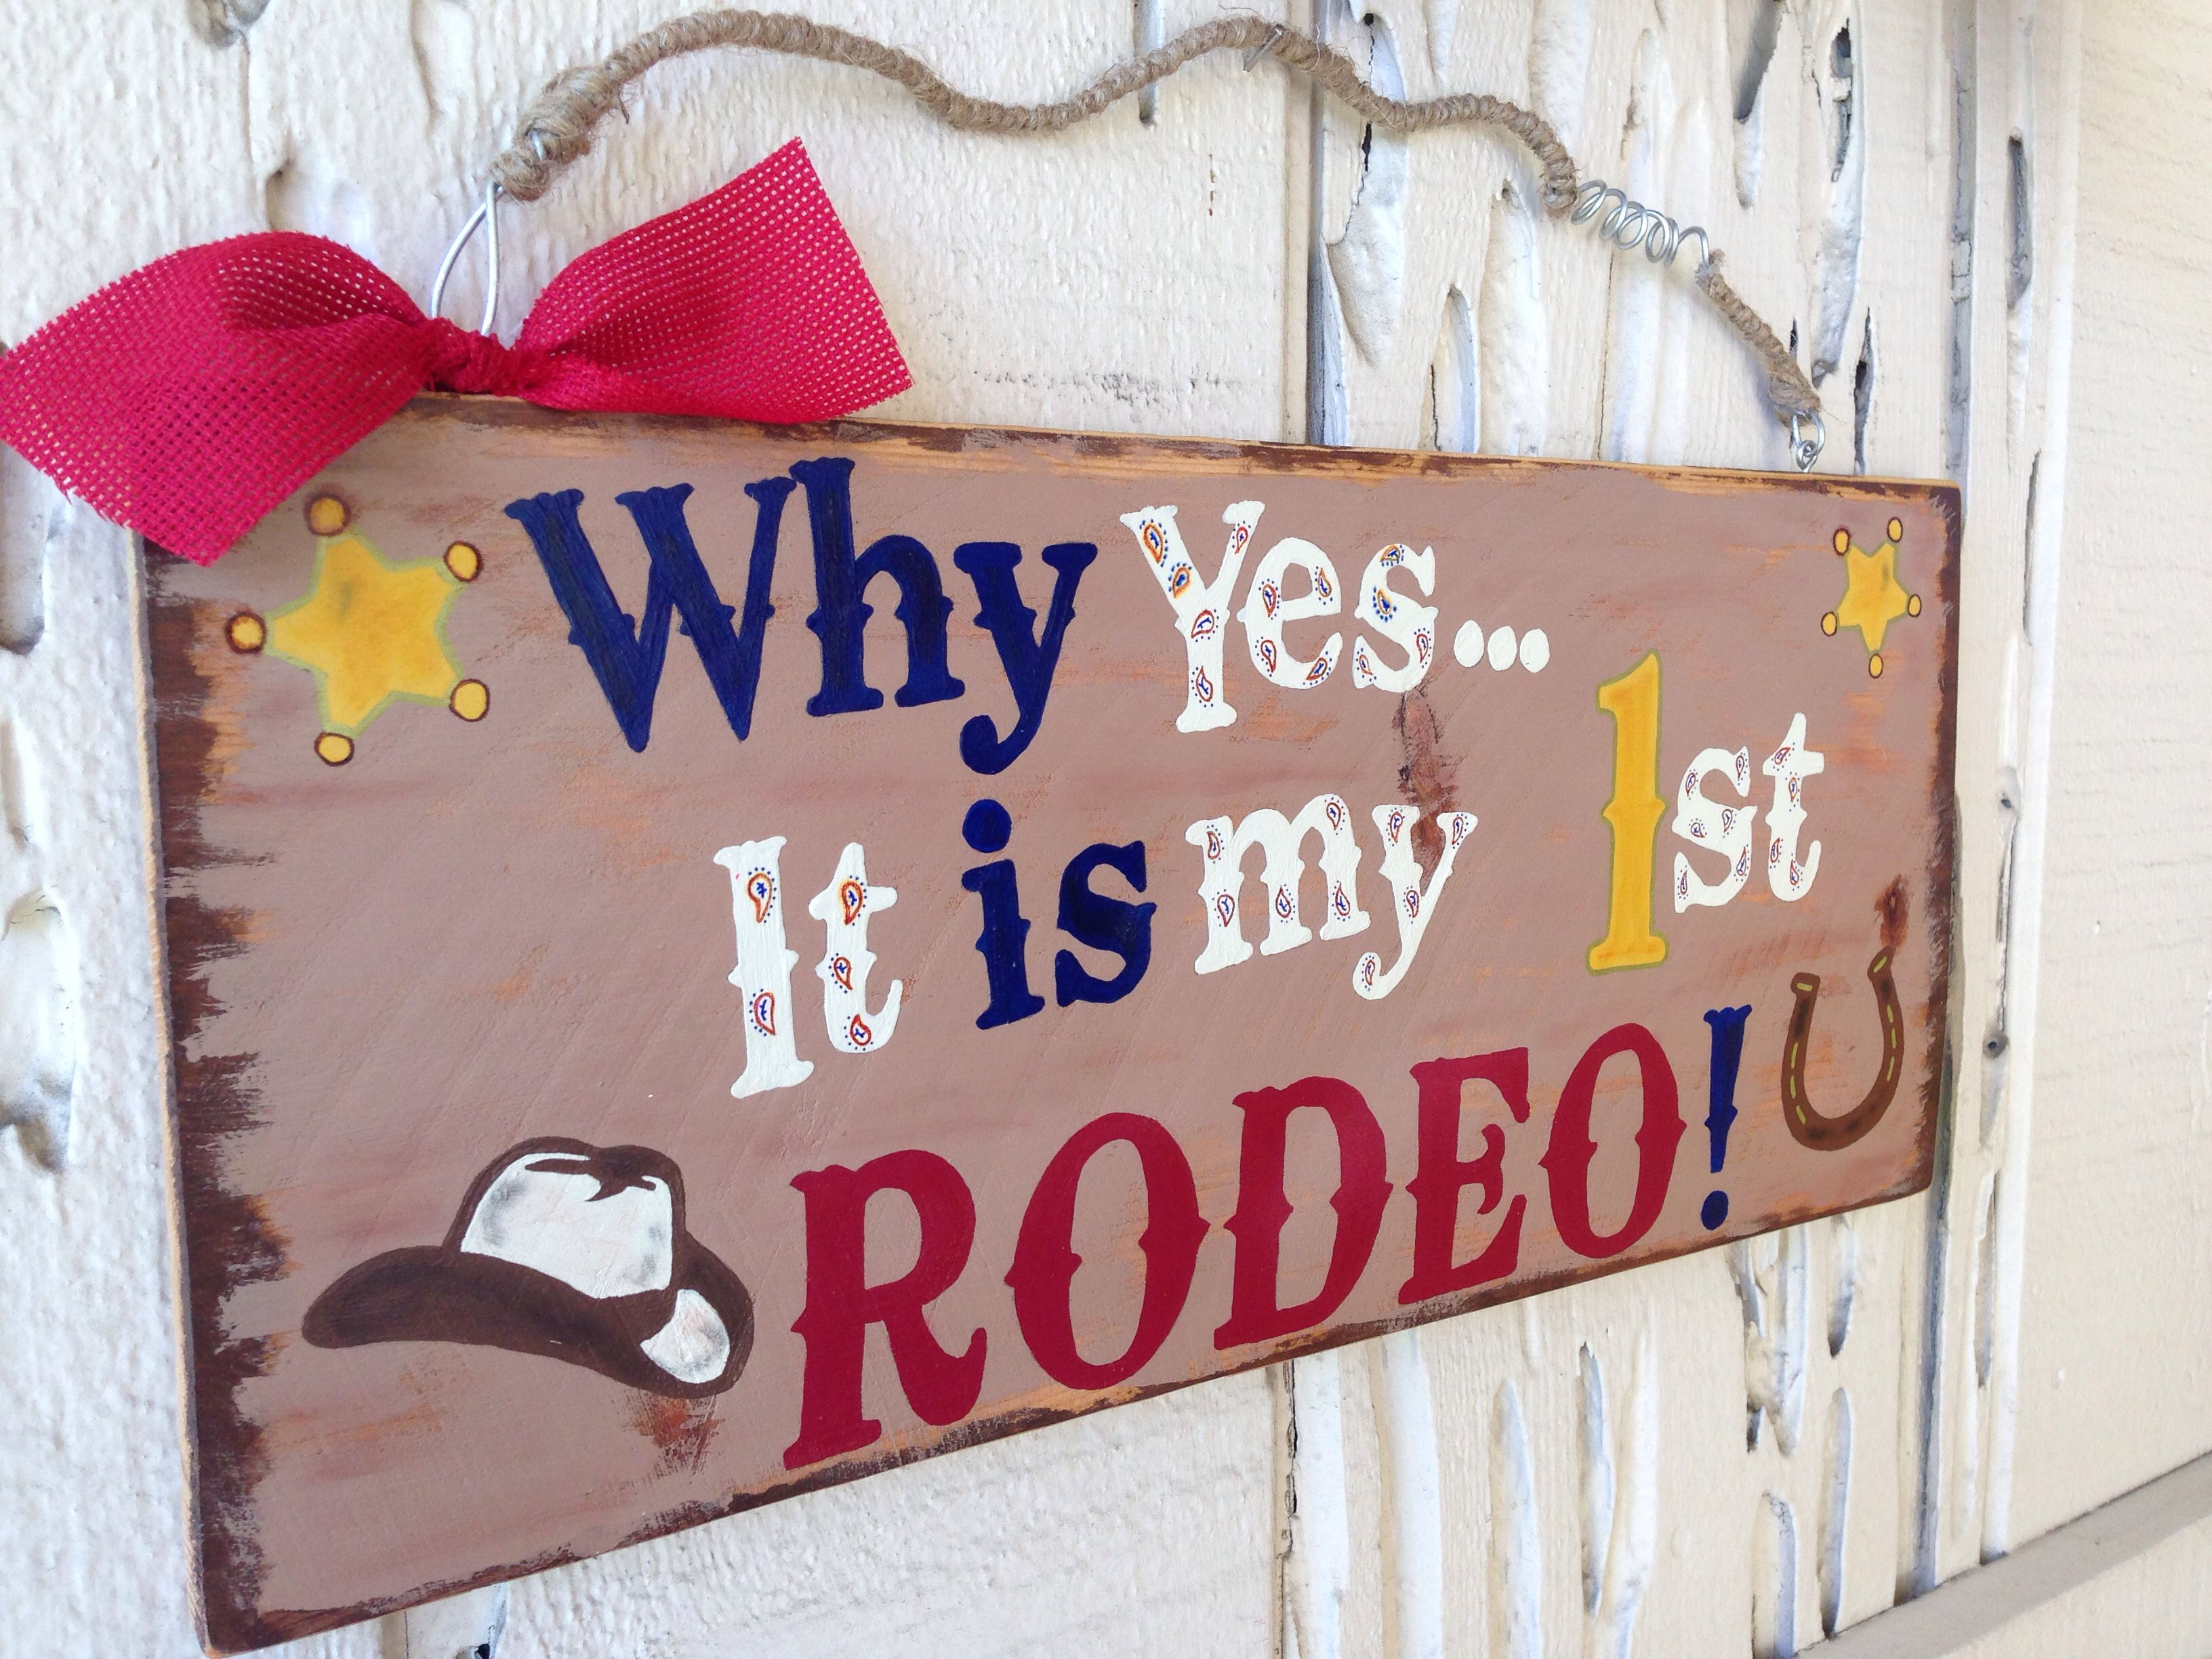 1st birthday My 1st Rodeo sign Monicas custom wooden signs